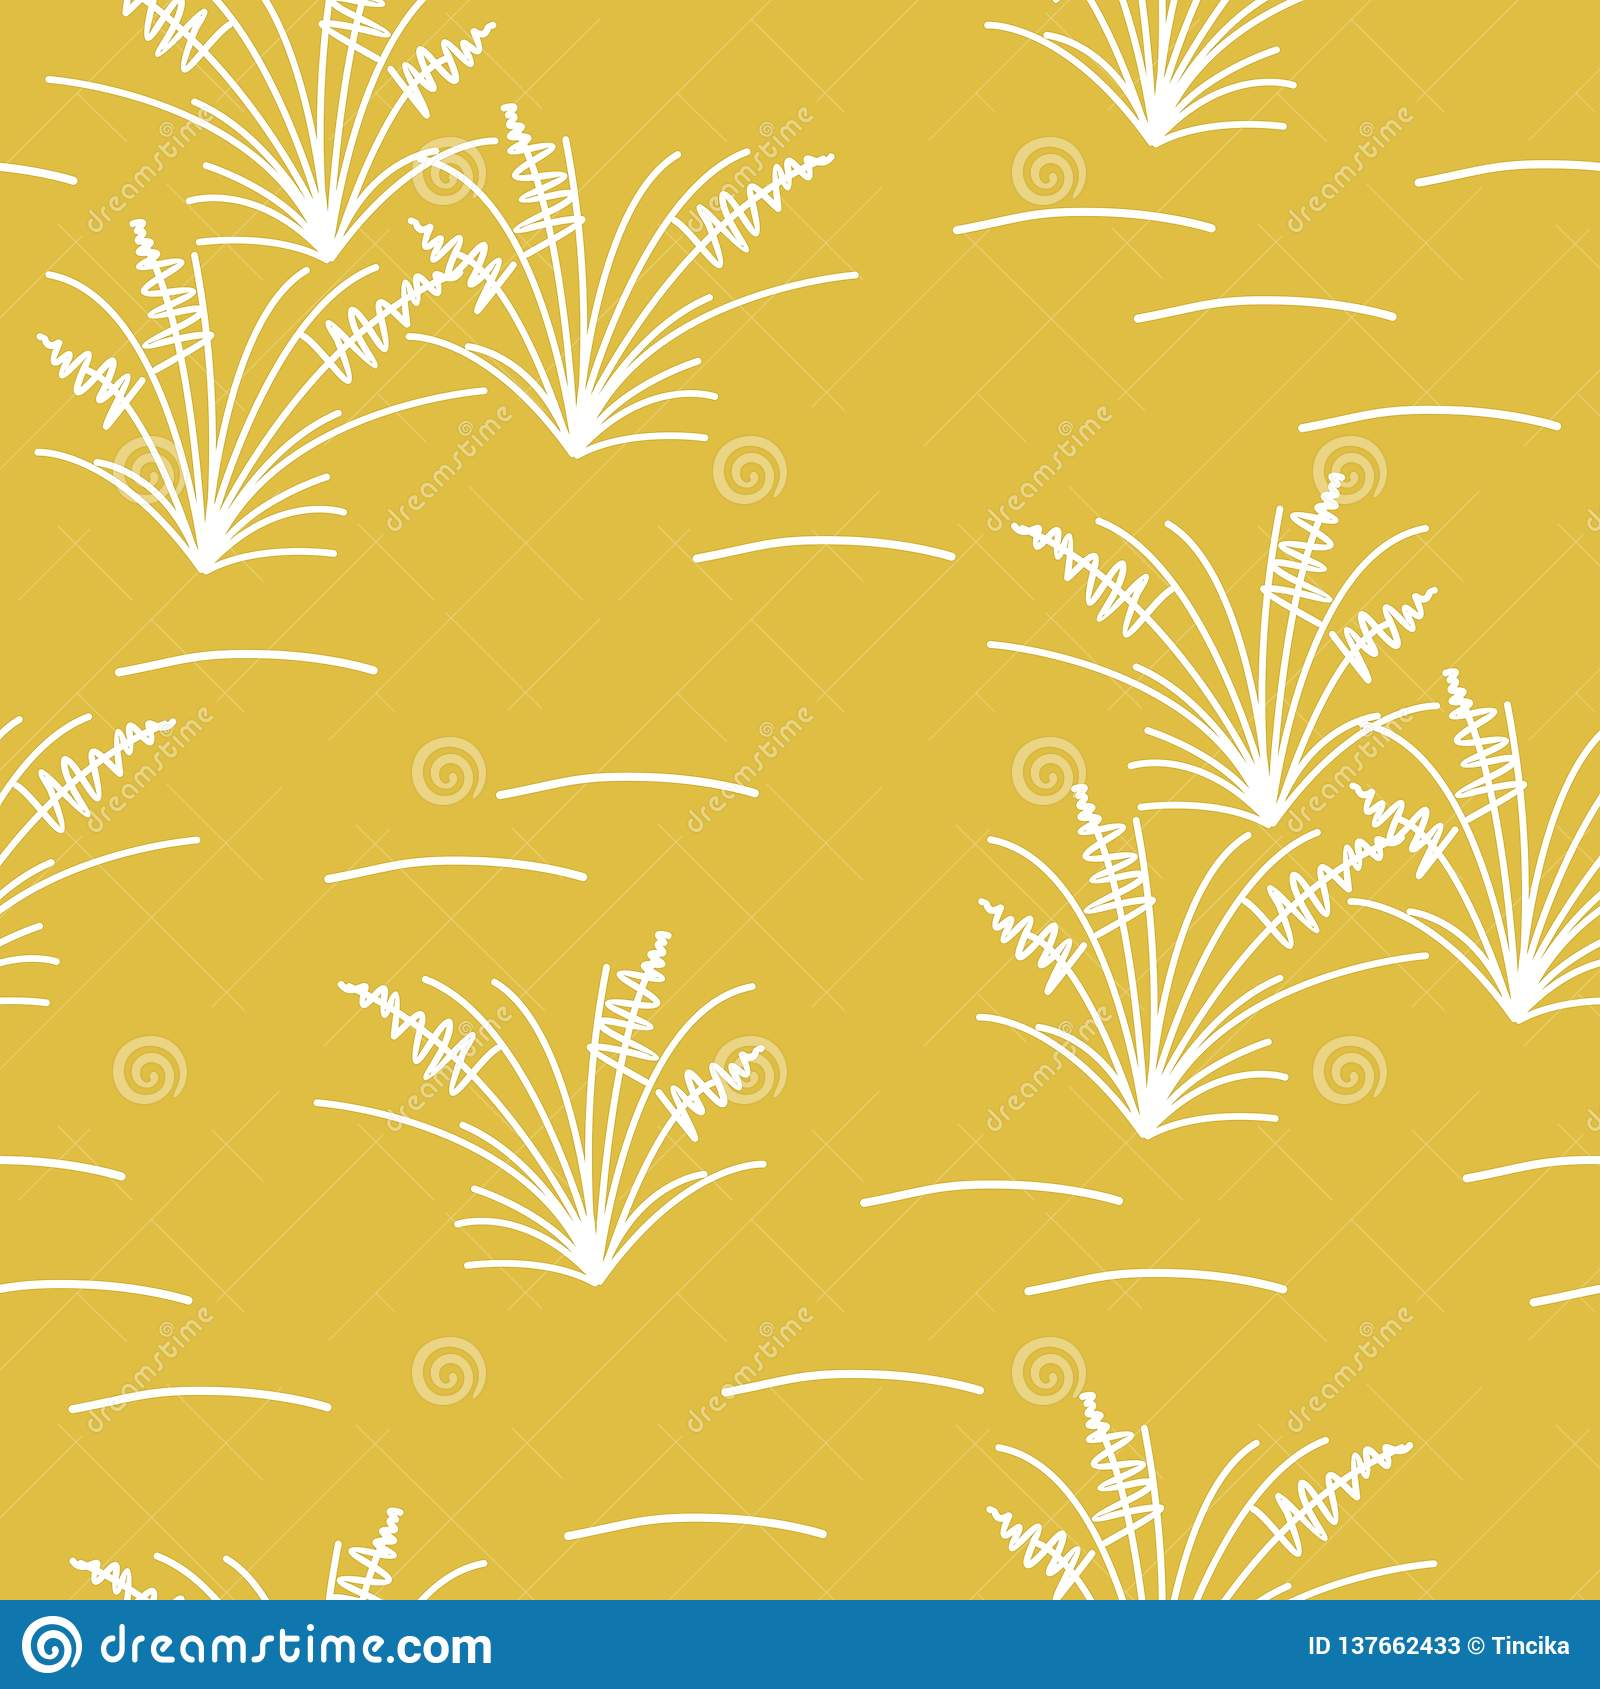 Elegant spring colors, nature insprired monochromatic vector seamless pattern.